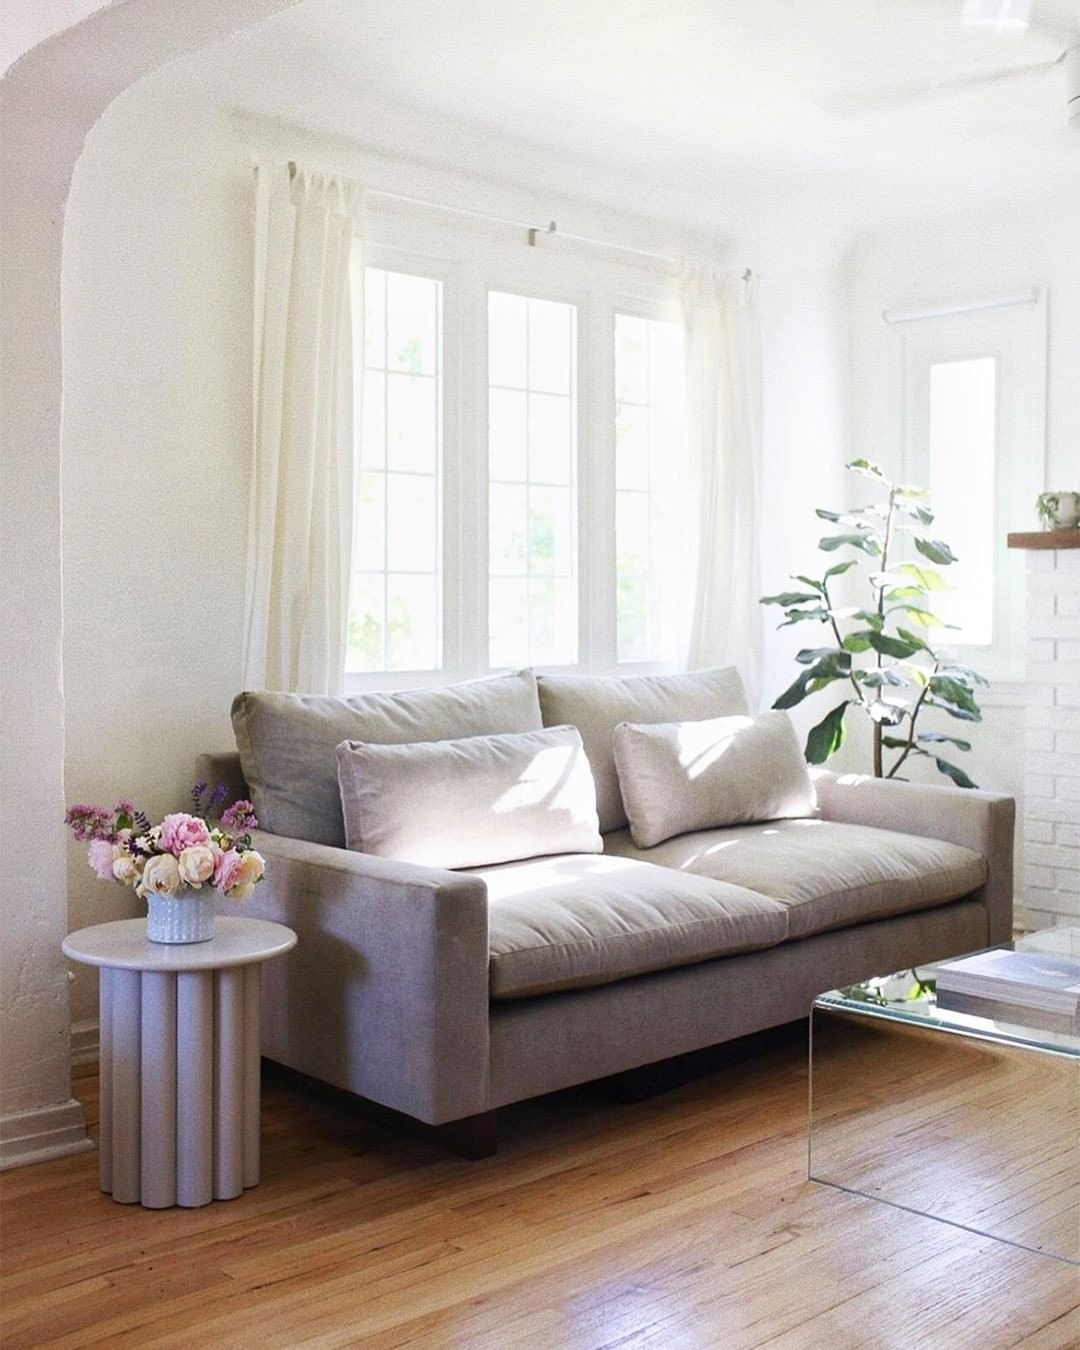 West Elm Furniture Decor On Instagram Lindsaygraviet S Charming Living Room With Our Harmony Sofa H Home Living Room West Elm Furniture West Elm Couch